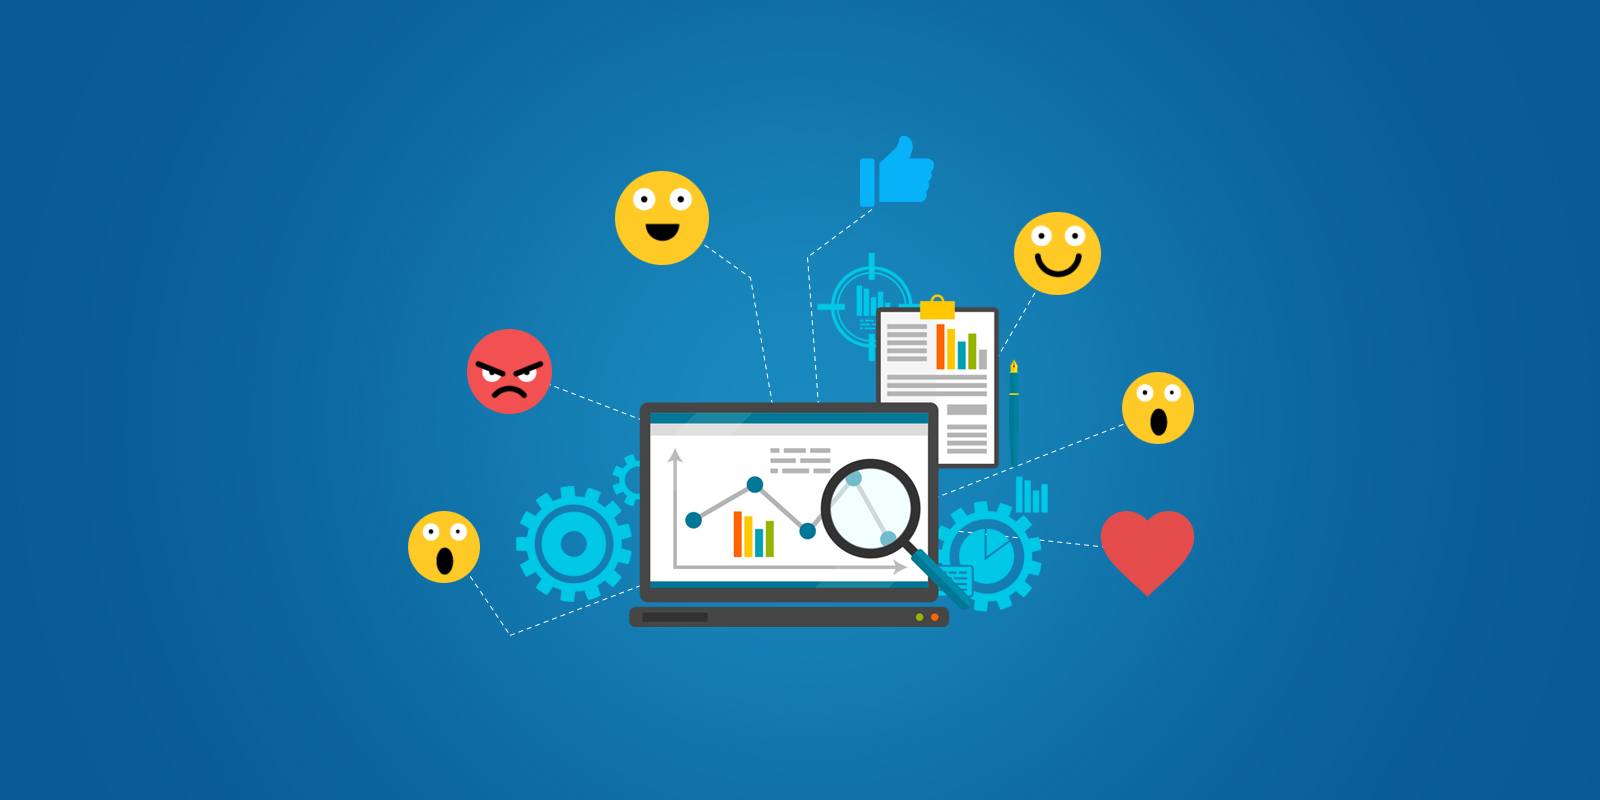 Customer Sentiment drives Product Recommendation